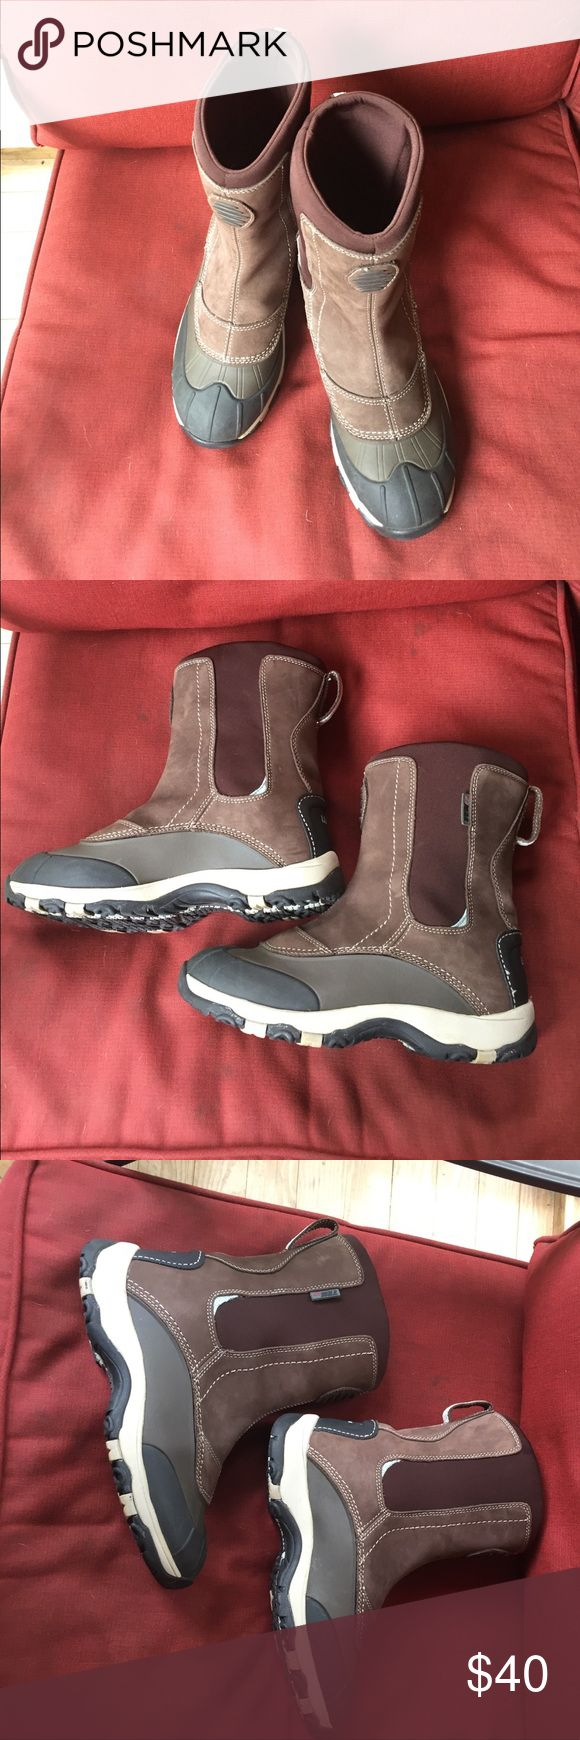 LL Bean Women's Storm Chasers Excellent condition, pull on. Upper is soft, flexible waterproof leather, lightweight rubber half shell. Insulated with 200 gram Primaloft for added warmth. LL Bean Shoes Winter & Rain Boots